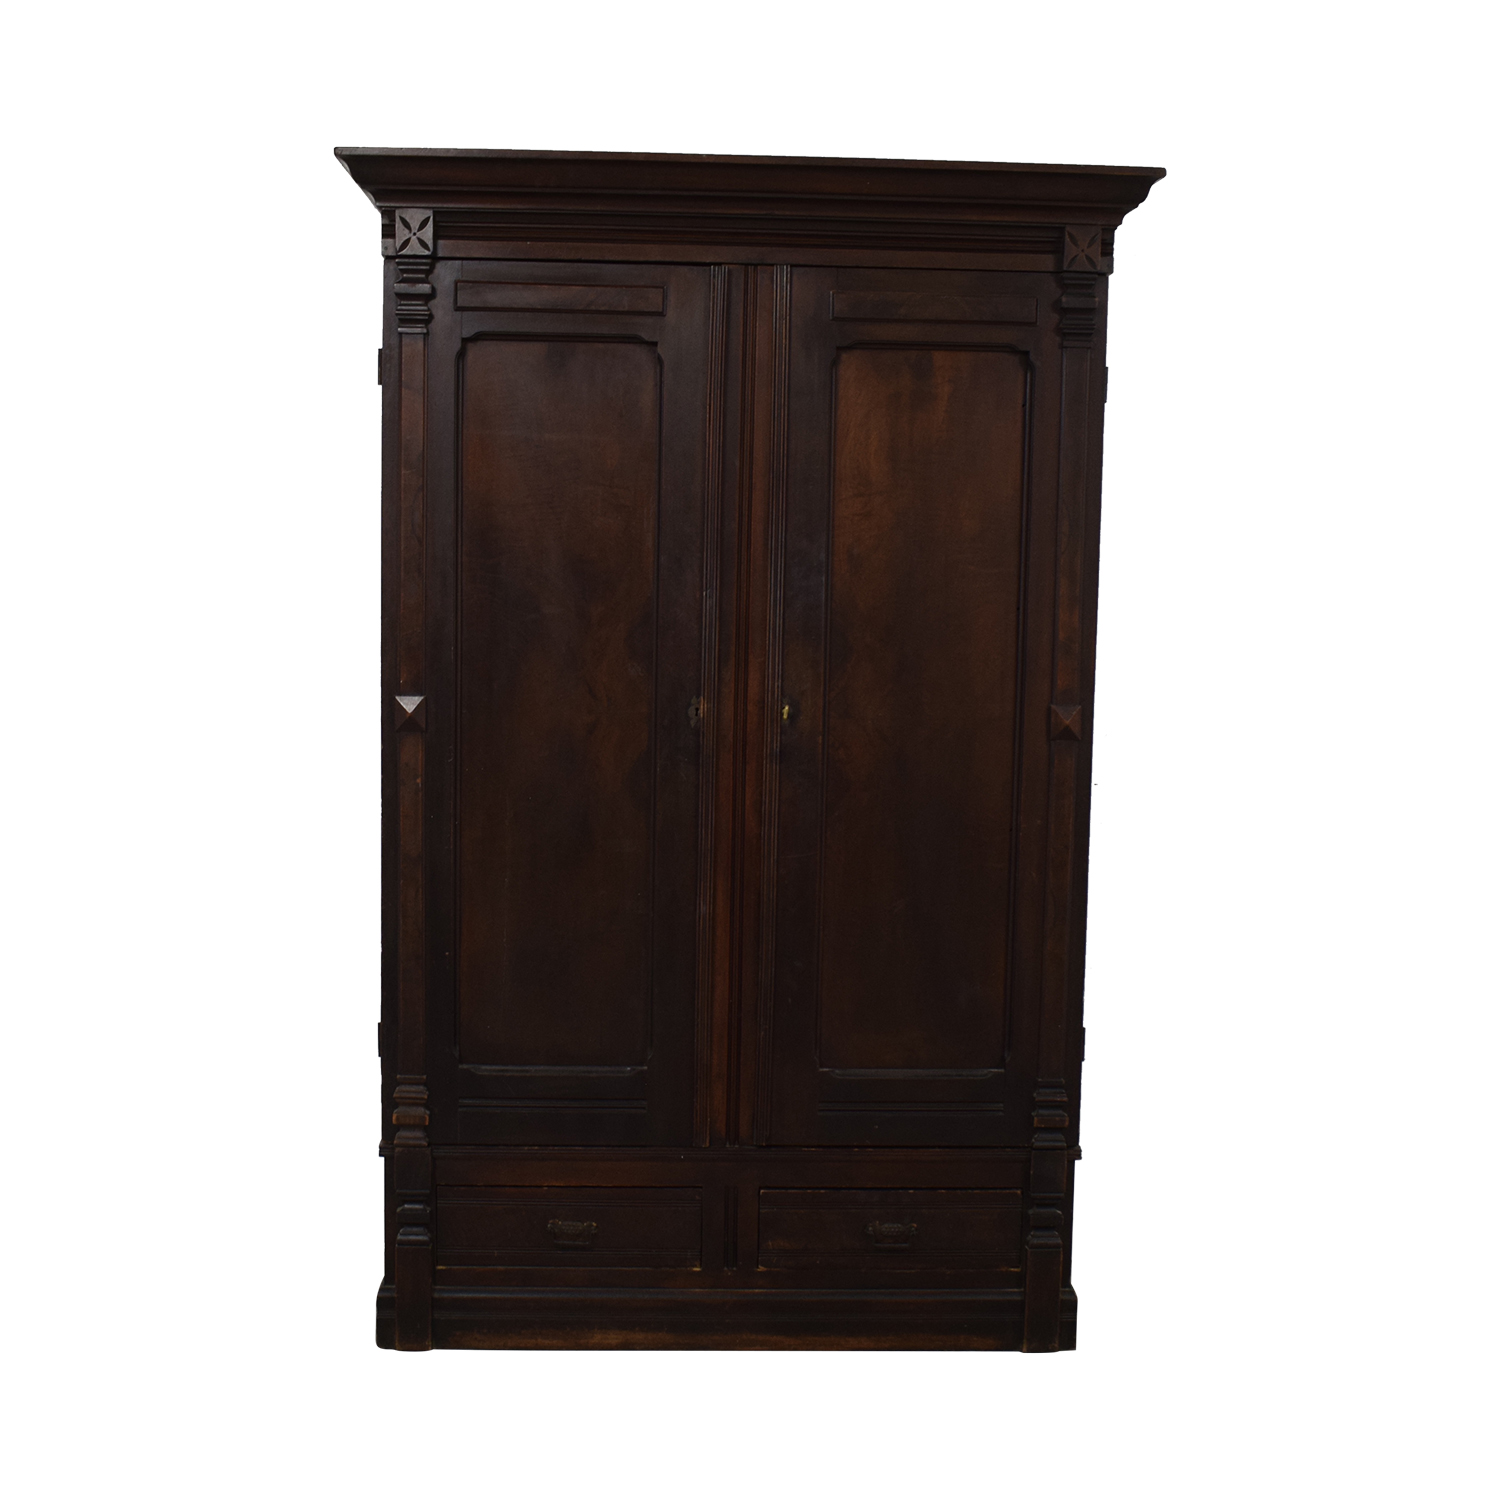 Antique Wood Two-Drawer Clothing Armoire with Key coupon